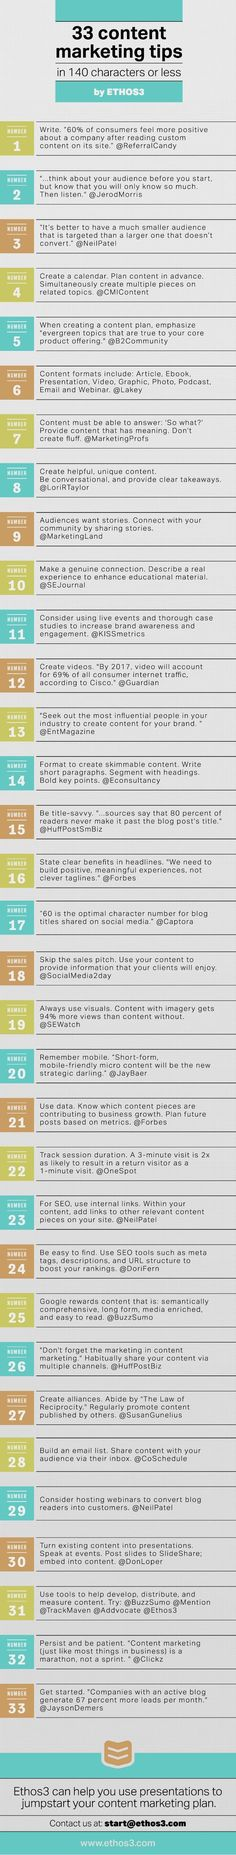 33 Content Marketing Tips, in 140 characters or less